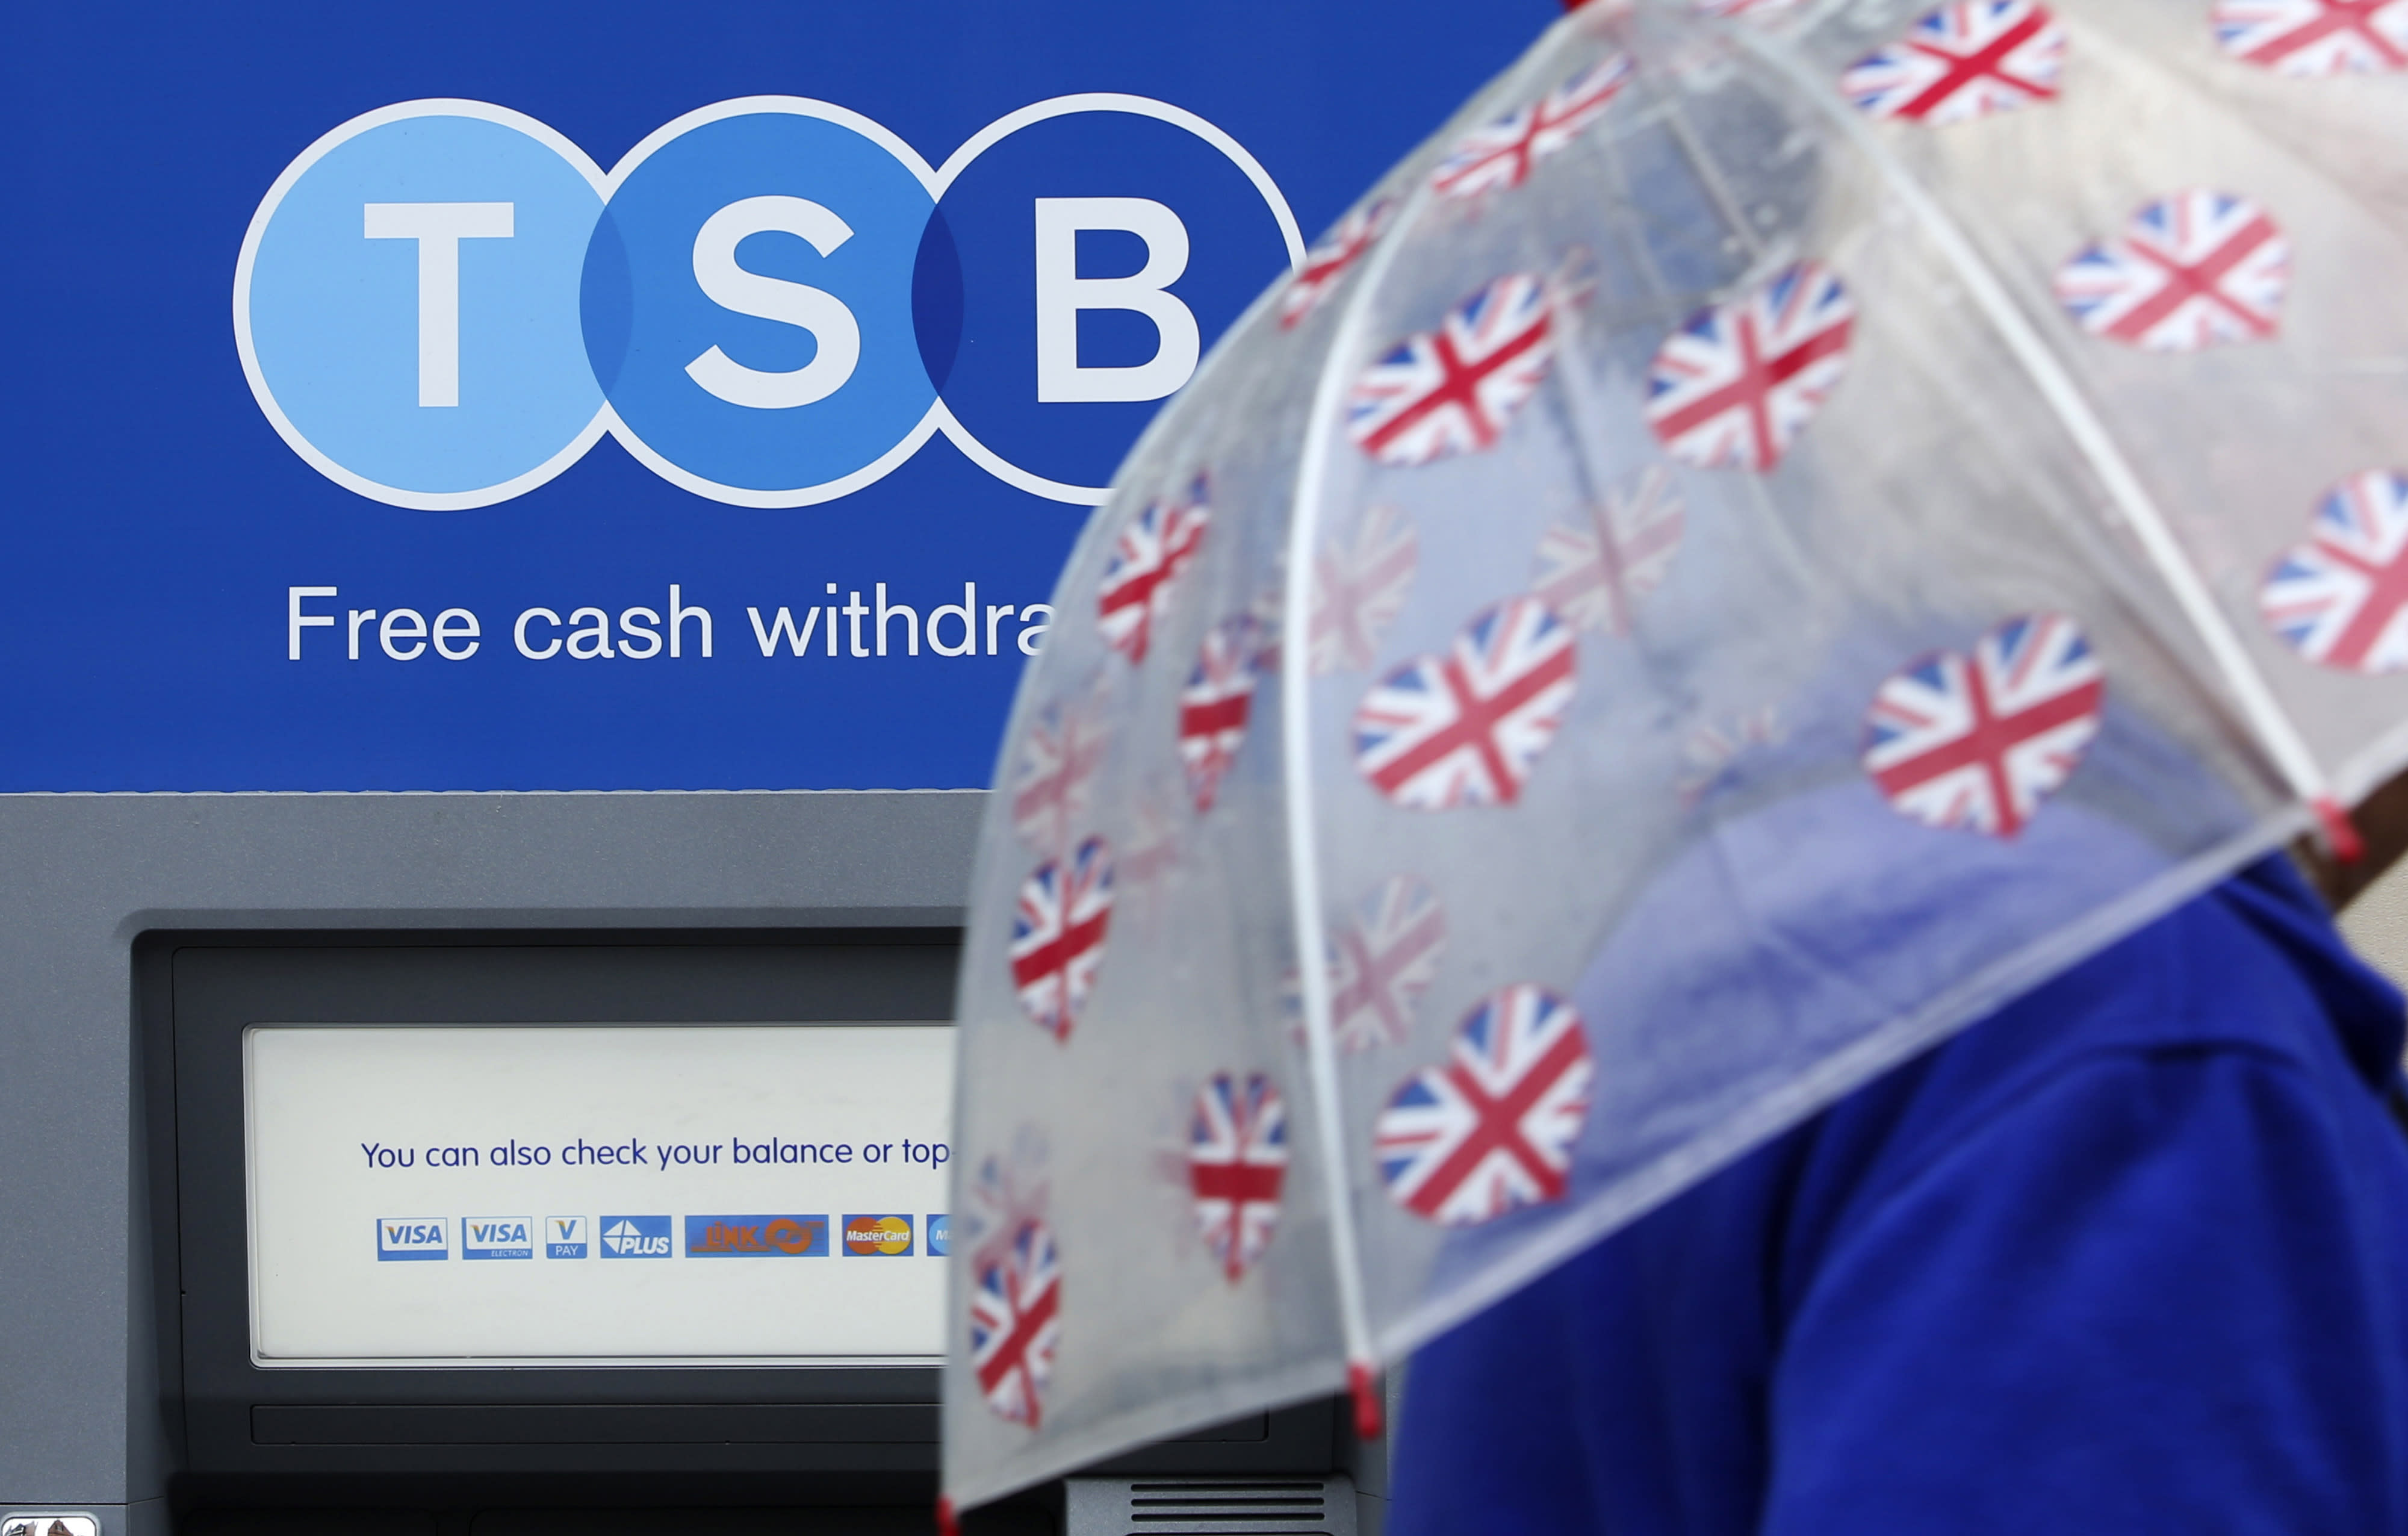 Hundreds of jobs at risk as TSB 'may close up to 100 branches'